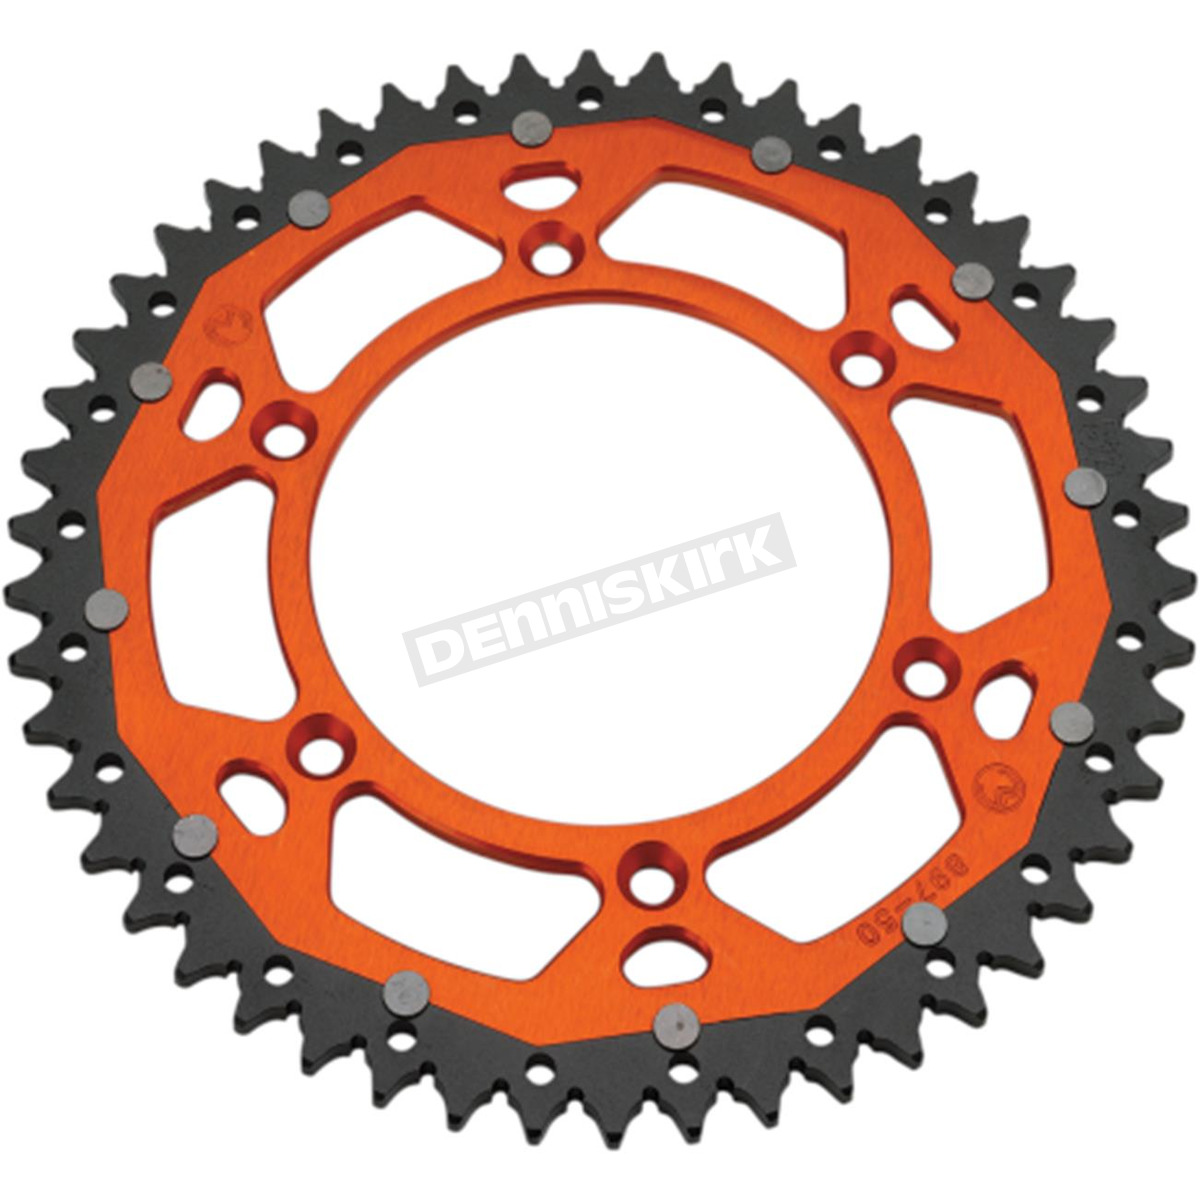 Motorcycle & ATV 1996 1997 1998 1999 2000 KTM 125 MXC 13 Tooth Front And 52 Tooth Rear Sprocket Chains & Sprockets